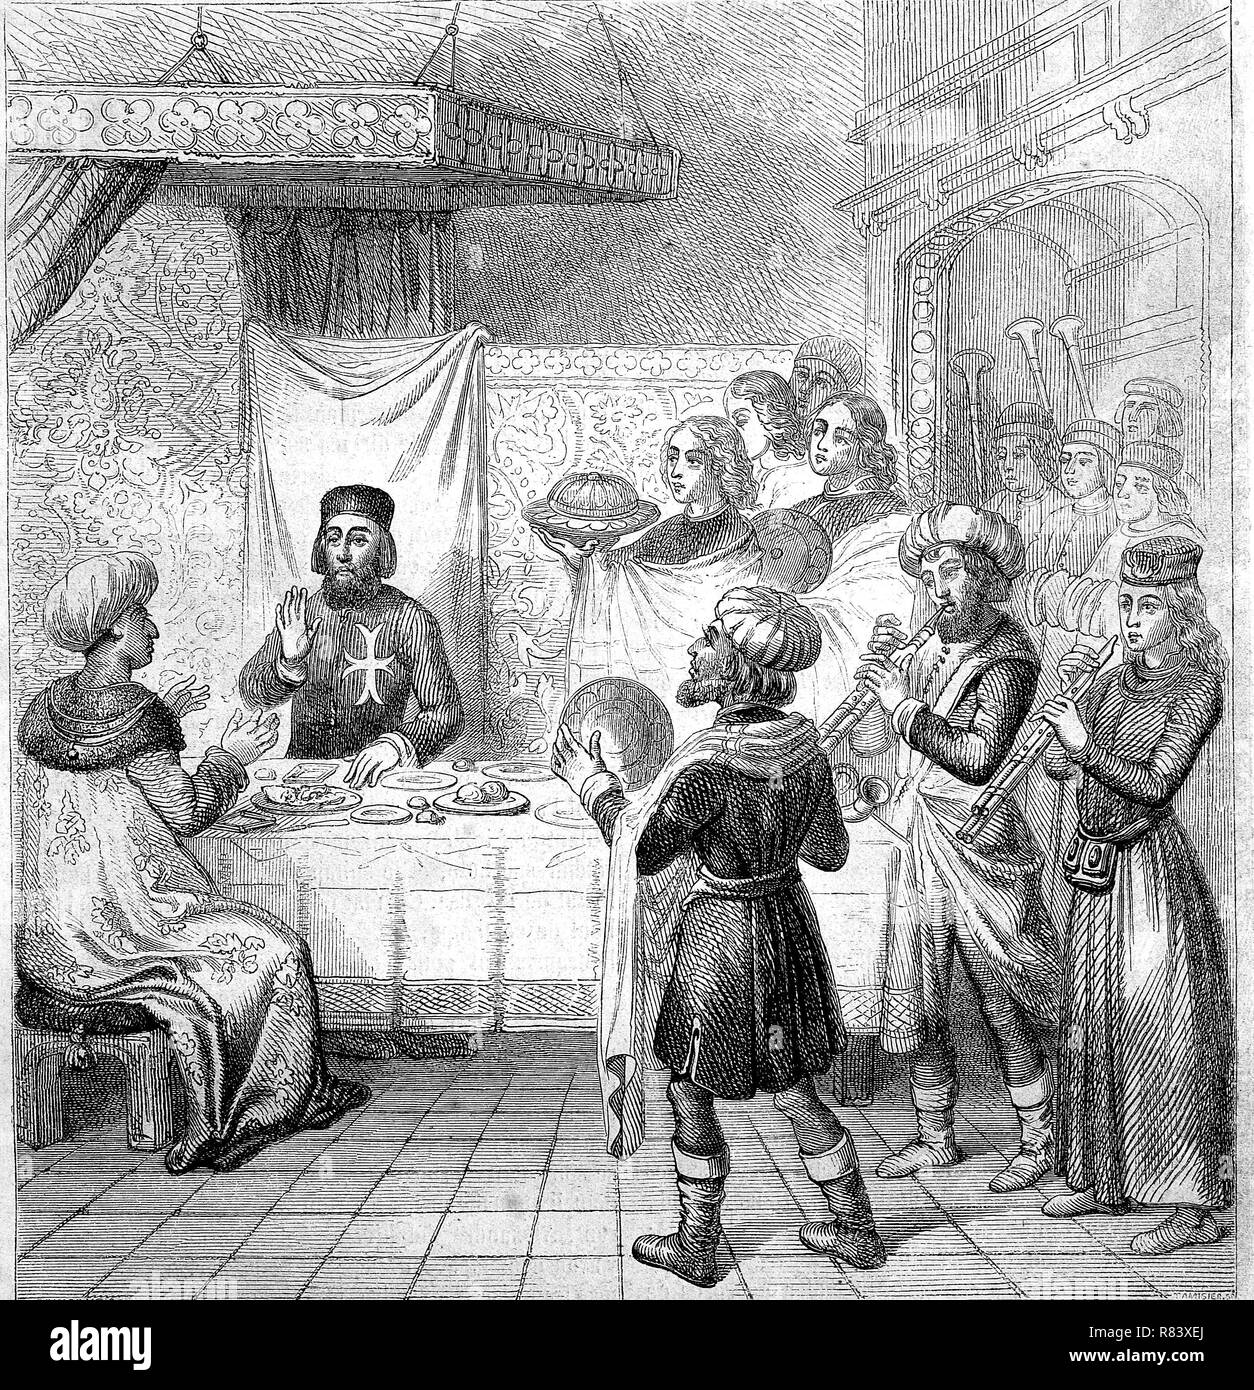 Digital improved reproduction, Sultan Cem or Cem Sultan, 1459-1495, also referred to as Jem Sultan, or Zizim by the French, was a pretender to the Ottoman throne in the 15th century, here with Pierre d'Aubusson at a dinner in Rhodes, Rhodos, Greece, Griechenland, from an original print from the year 1855 - Stock Image